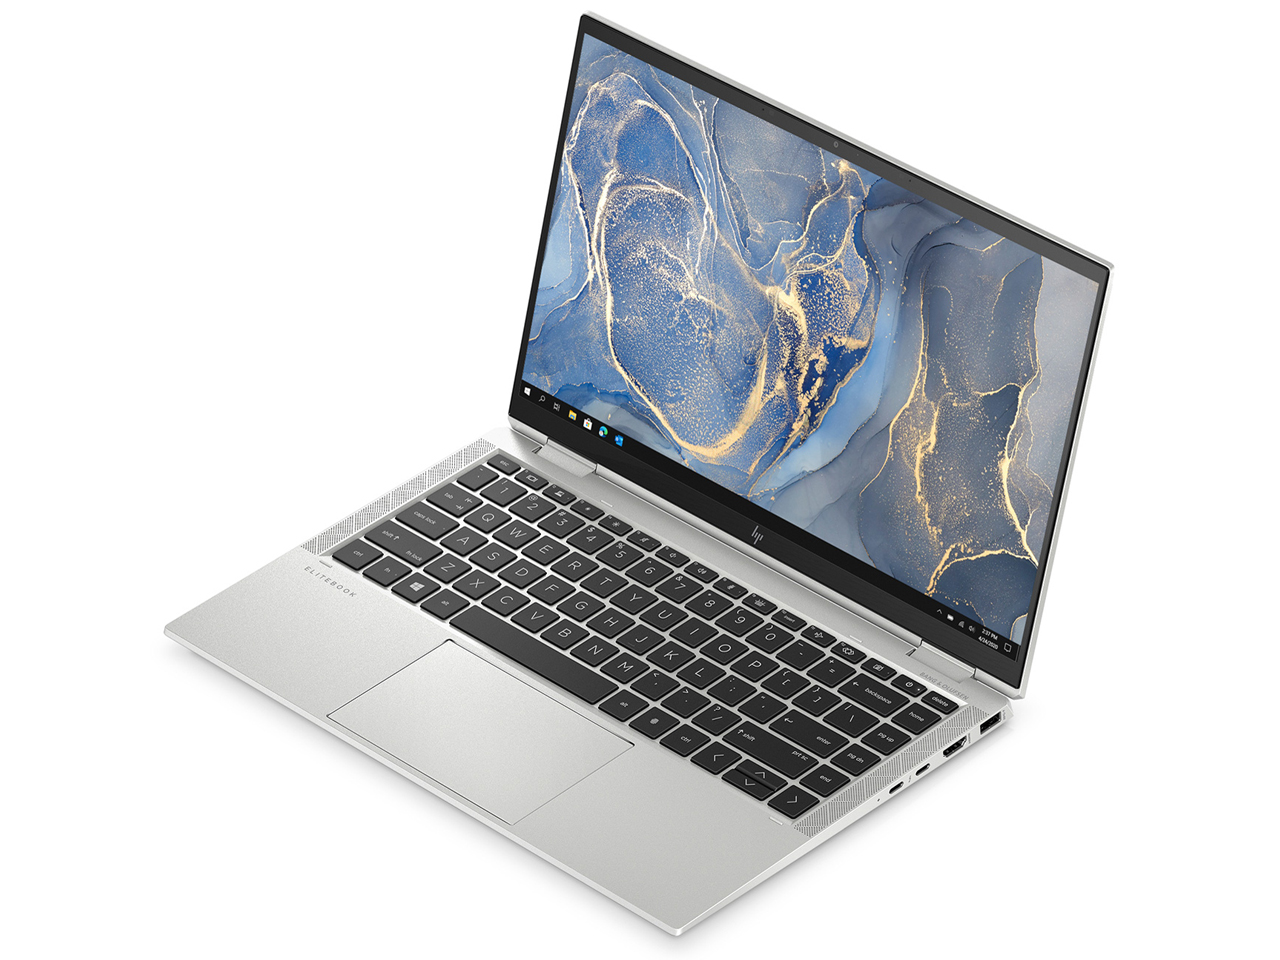 EliteBook x360 1040 G7 Notebook PC 22B97PA Core i5/8GBメモリ/256GB SSD/SureView/WiFi スタンダードモデル